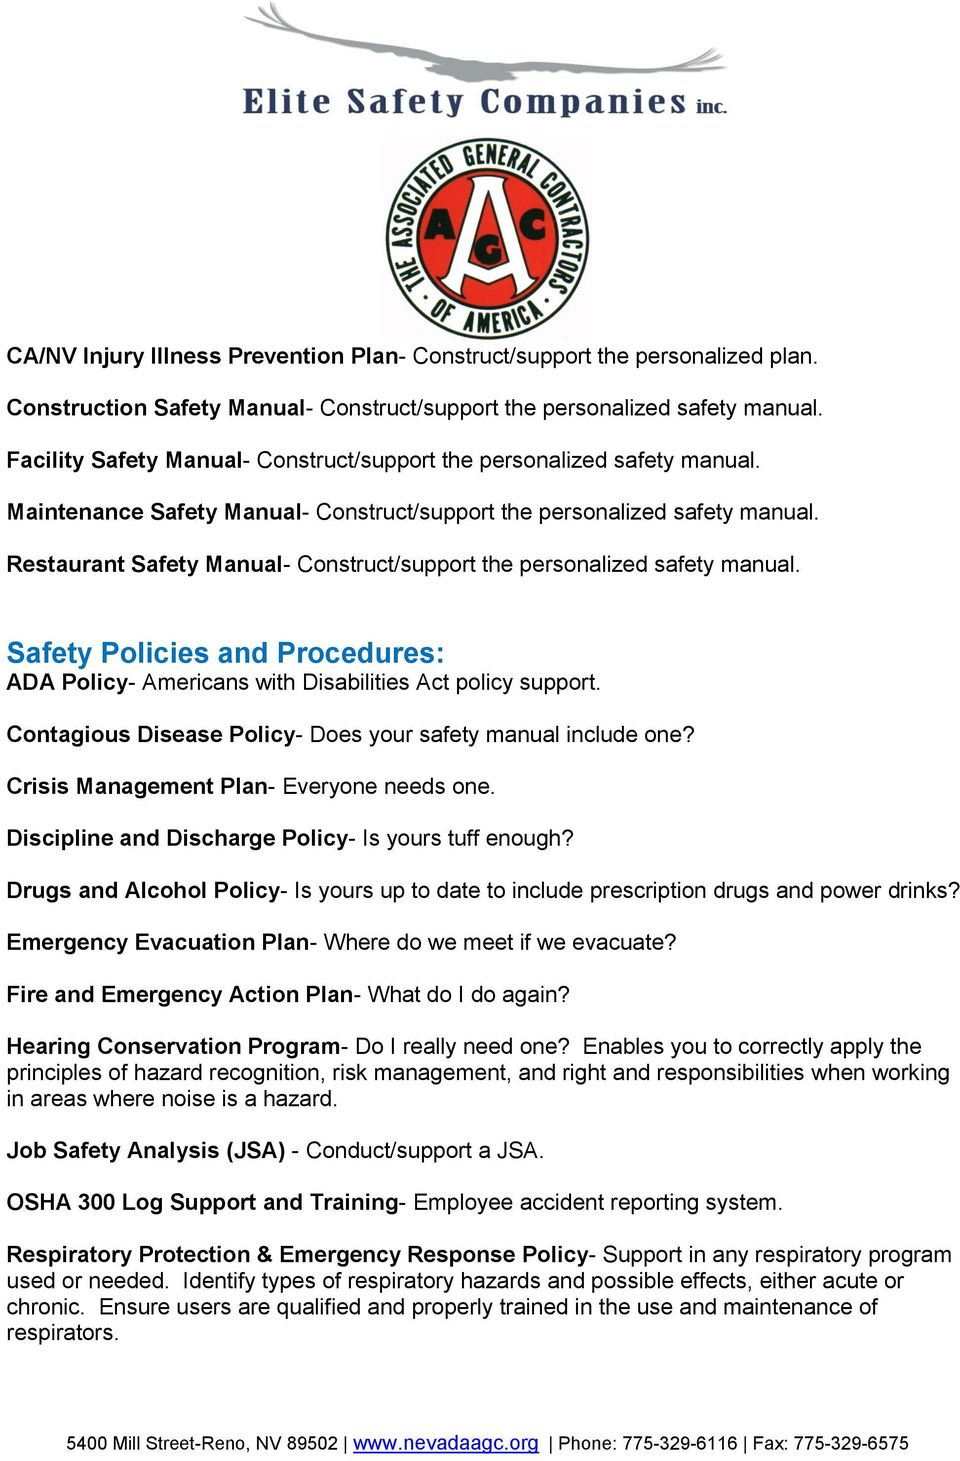 Restaurant Safety Manual- Construct/support the personalized safety manual. Safety Policies and Procedures: ADA Policy- Americans with Disabilities Act policy support.